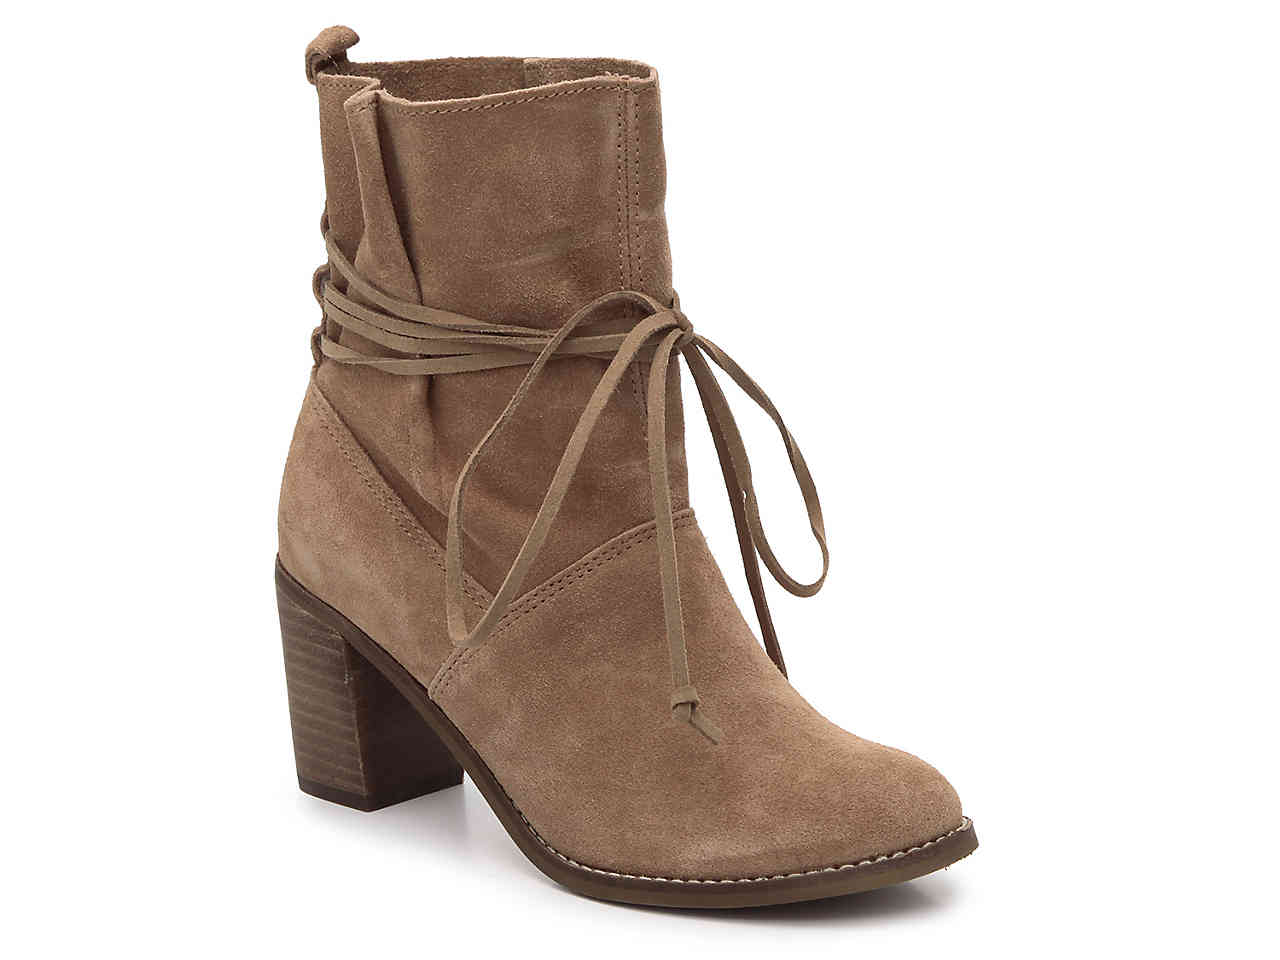 Boho shoes: Suede light brown bootie